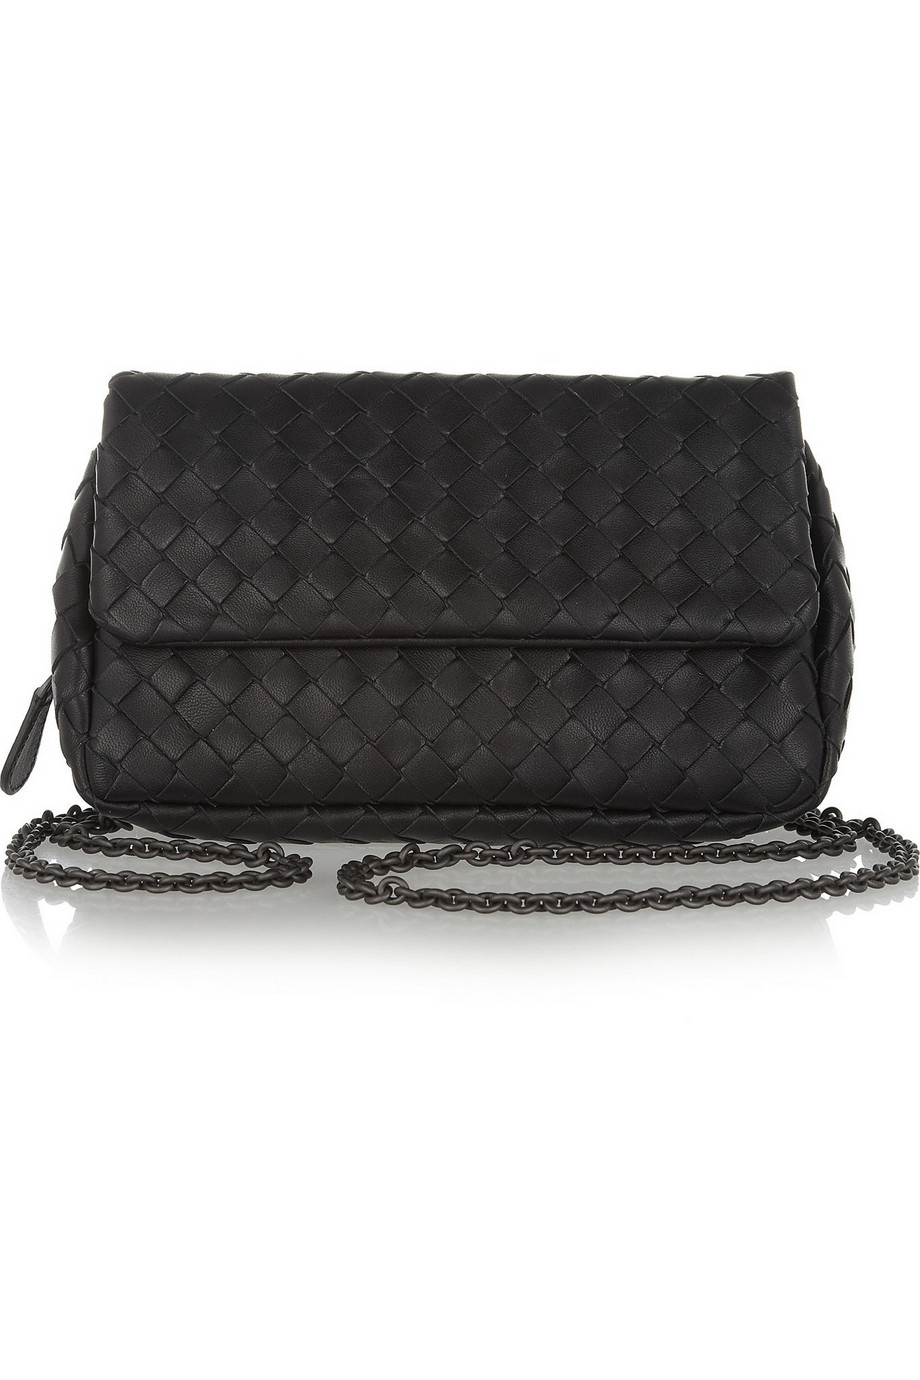 Bottega Veneta Messenger Mini Intrecciato Leather Shoulder Bag, Black, Women's, Size: One Size